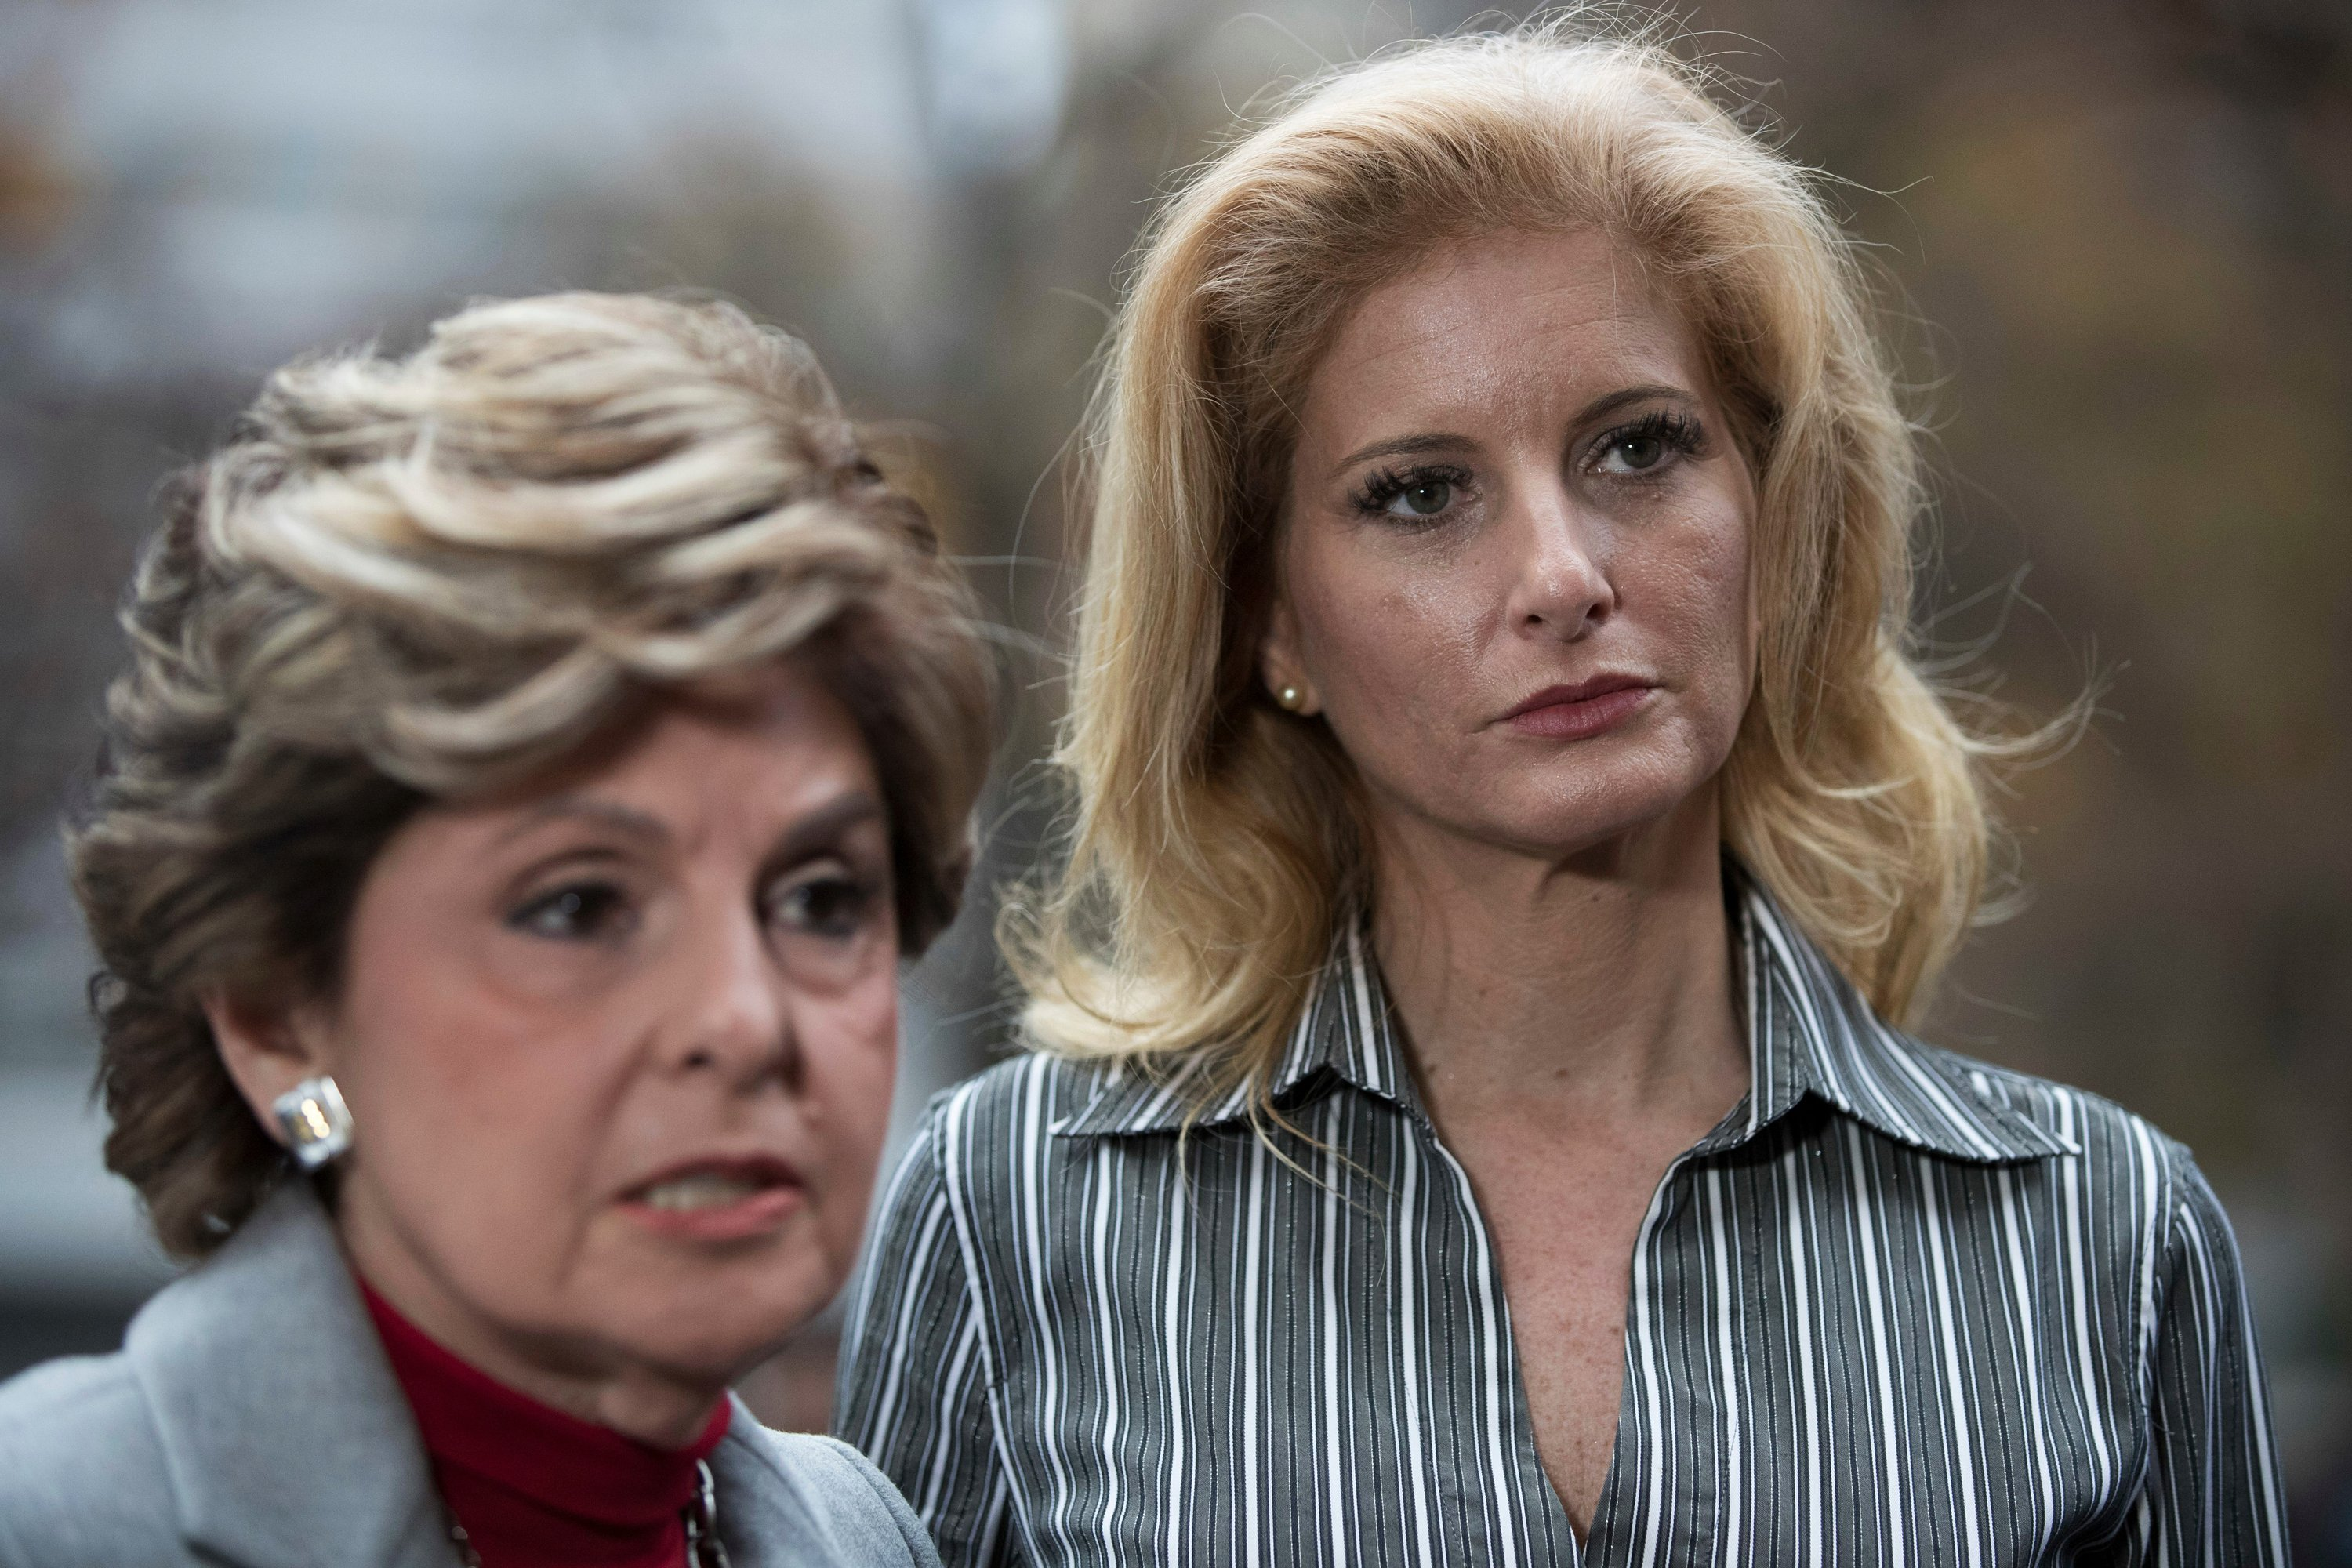 Trump lawyers launch appeal in 'Apprentice' contestant suit